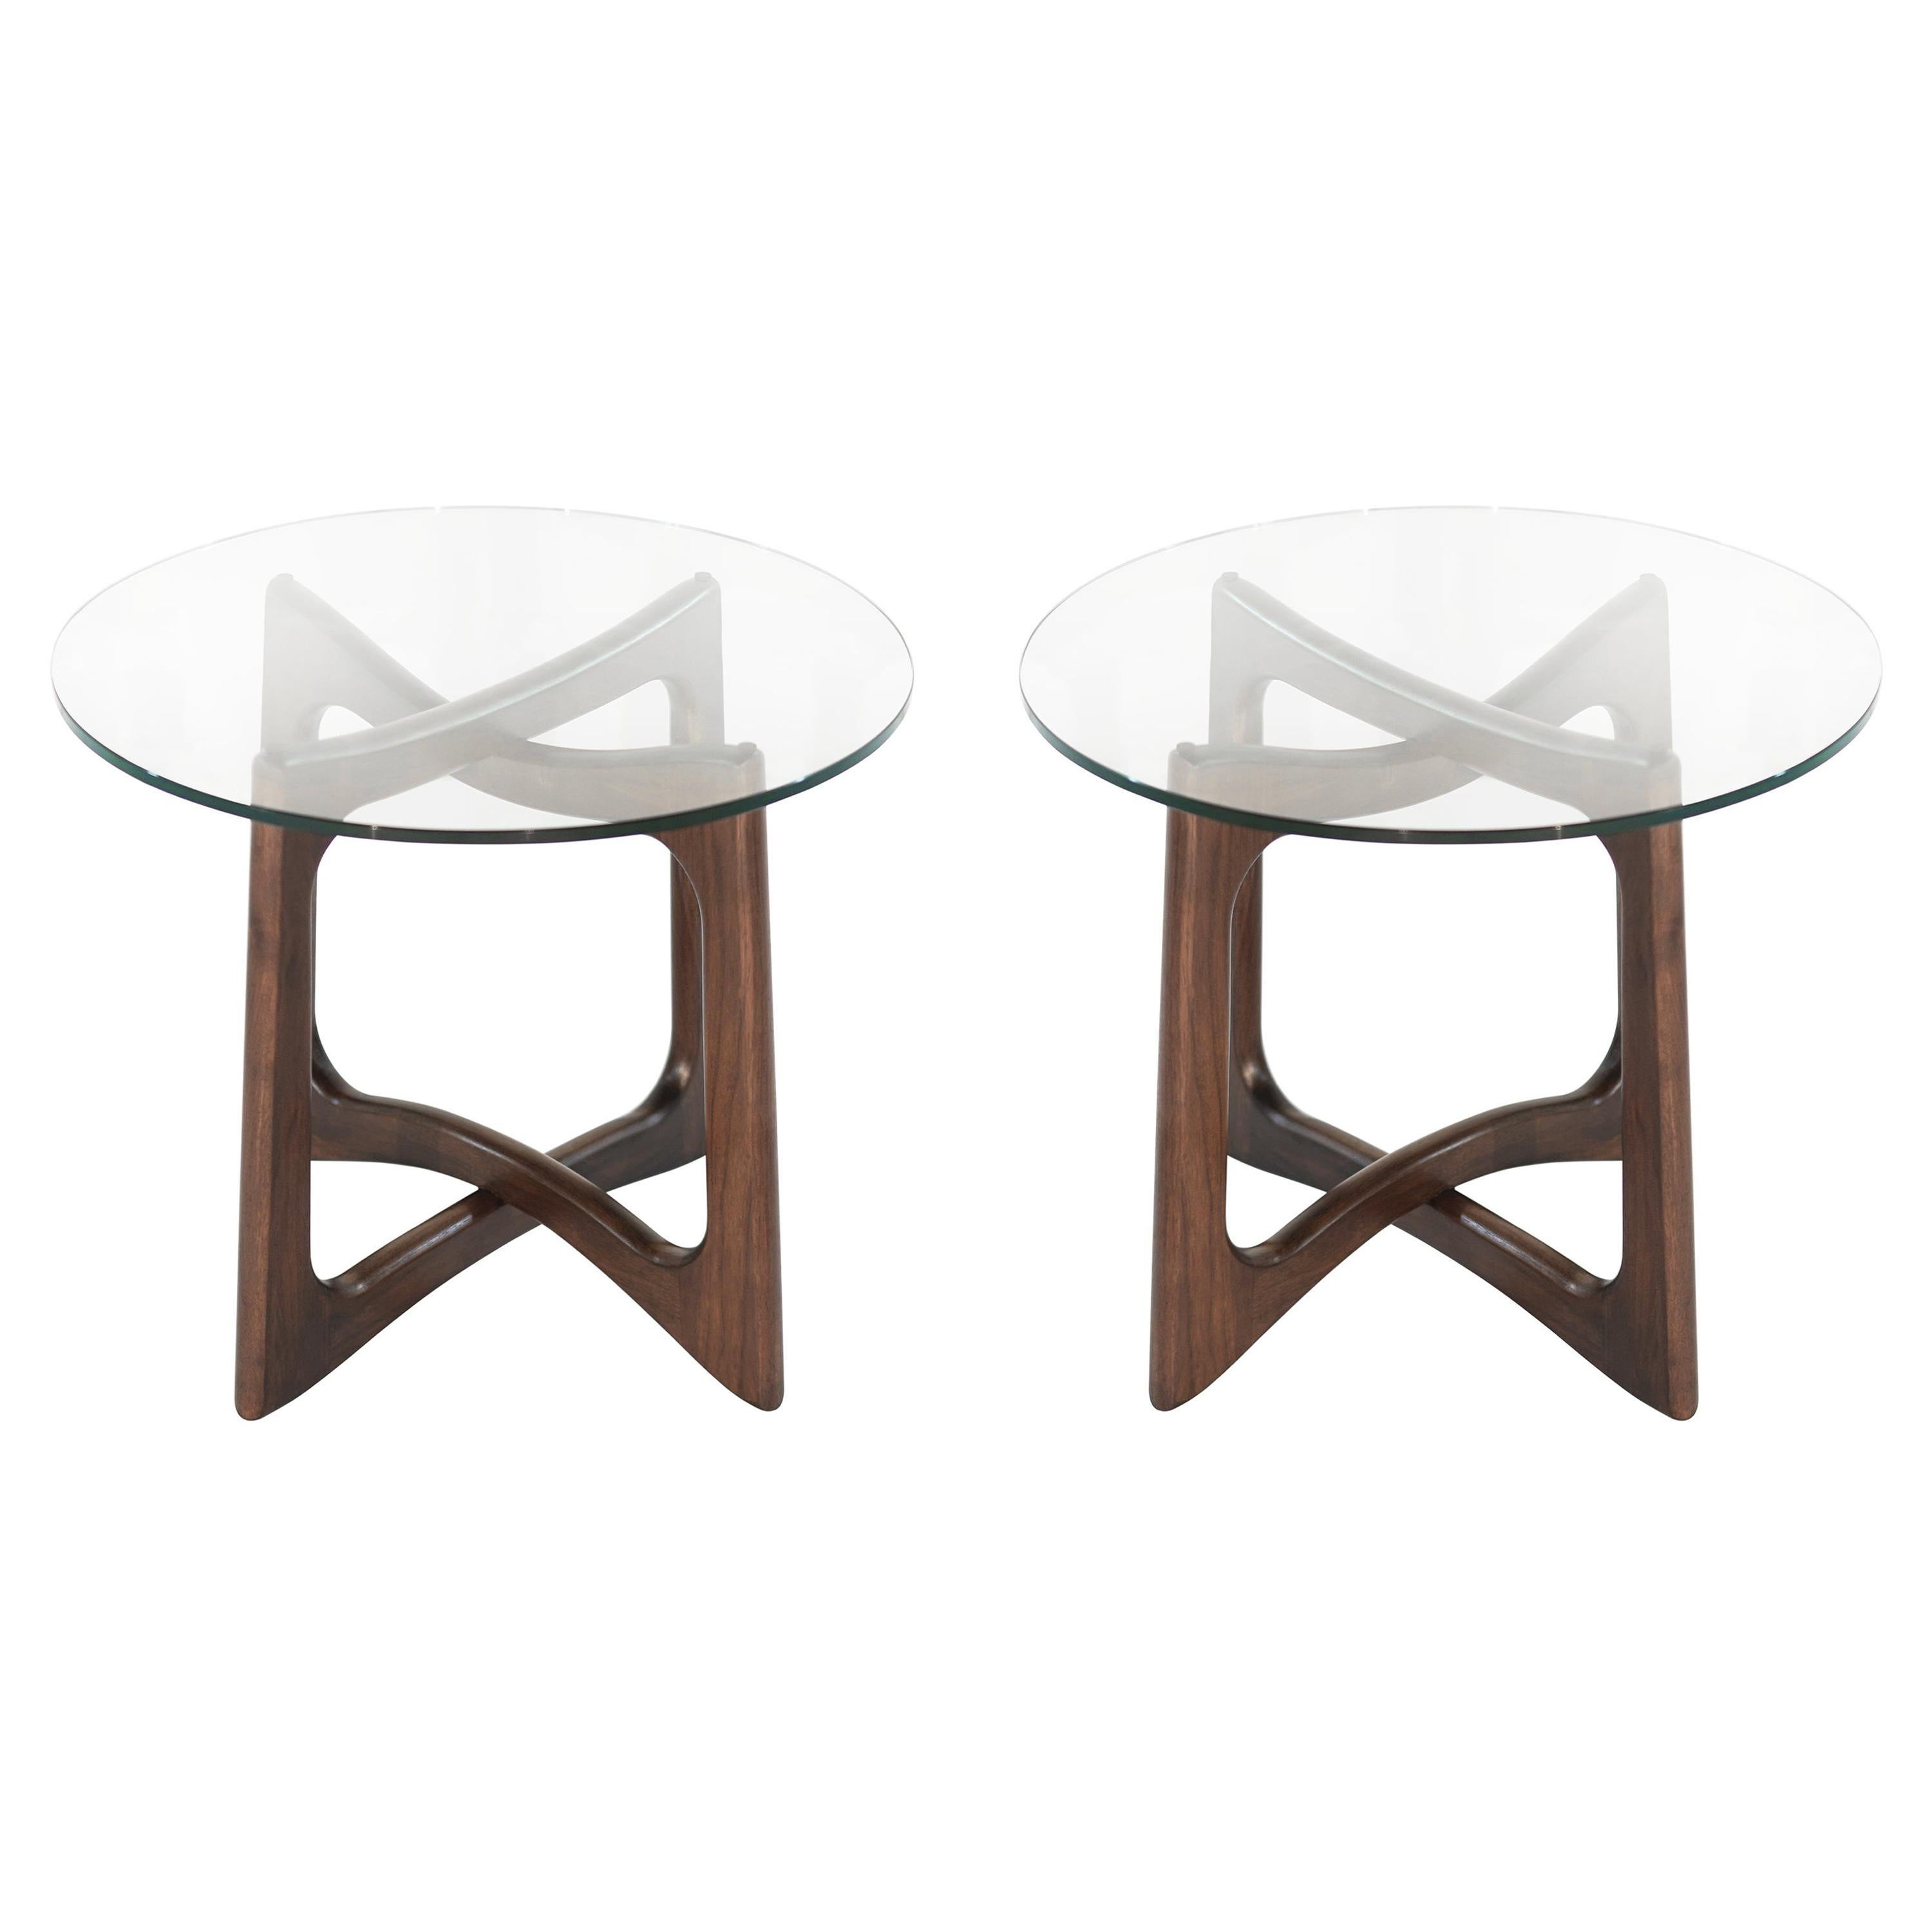 Adrian Pearsall for Craft Associates End Tables, 1950s